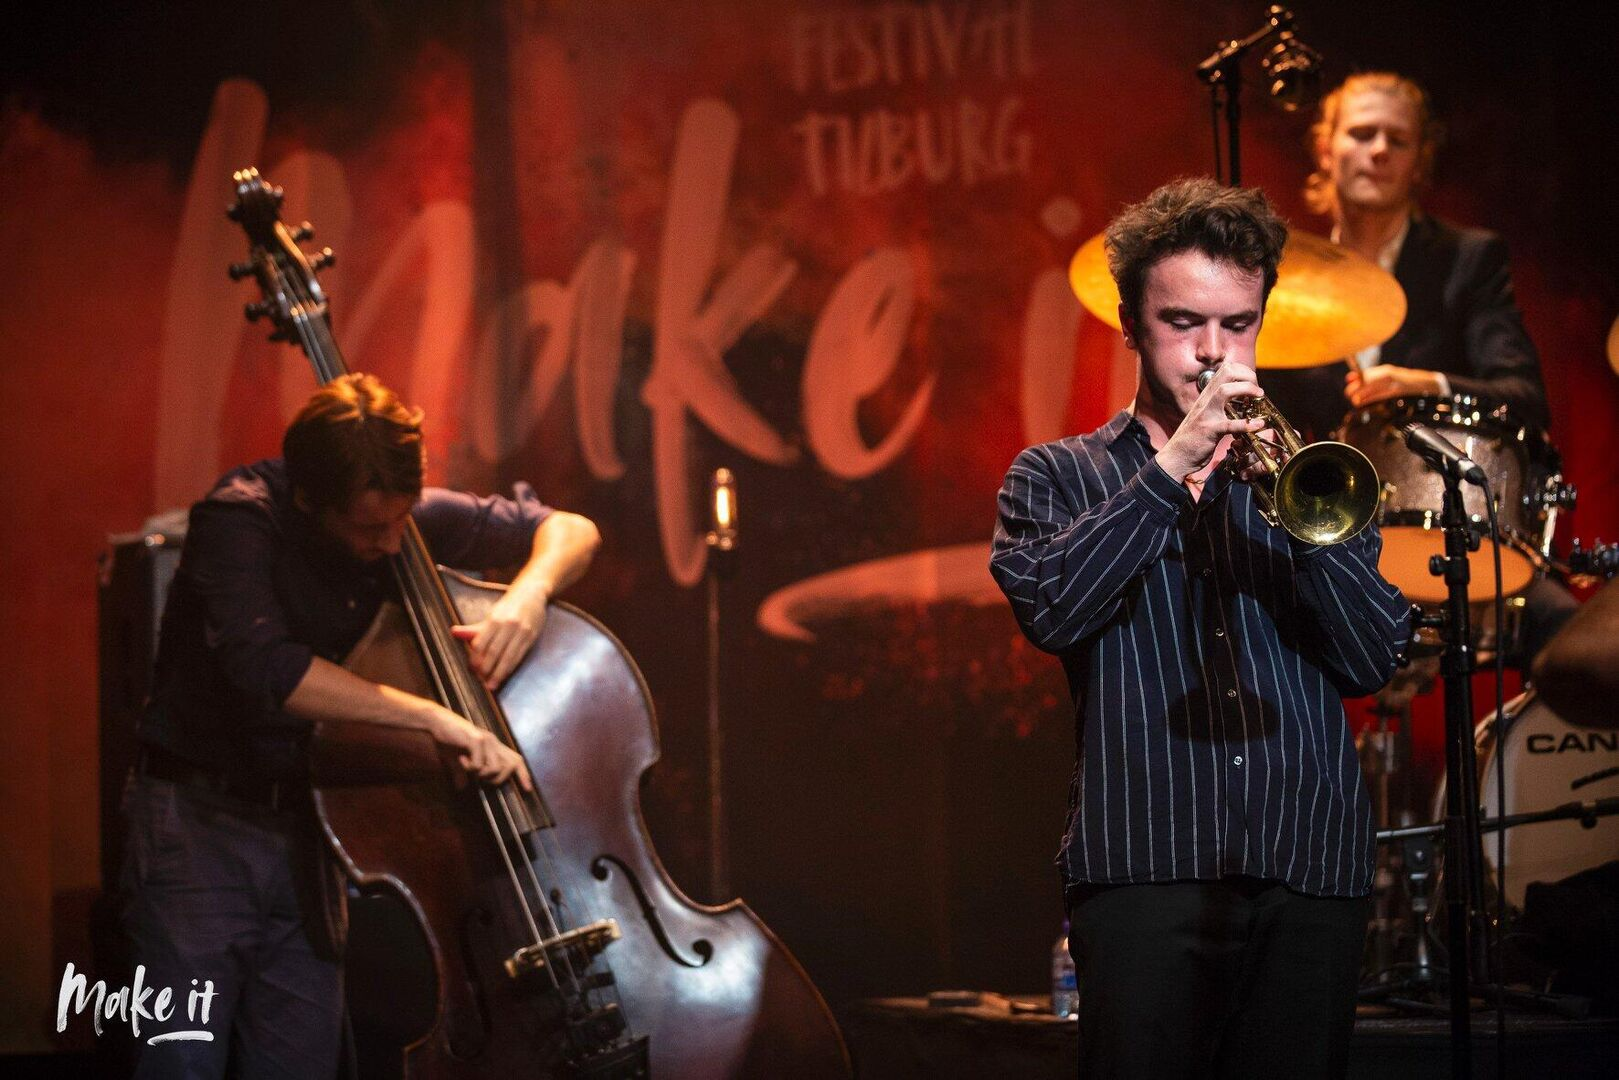 Make it - Jazz Festival Tilburg